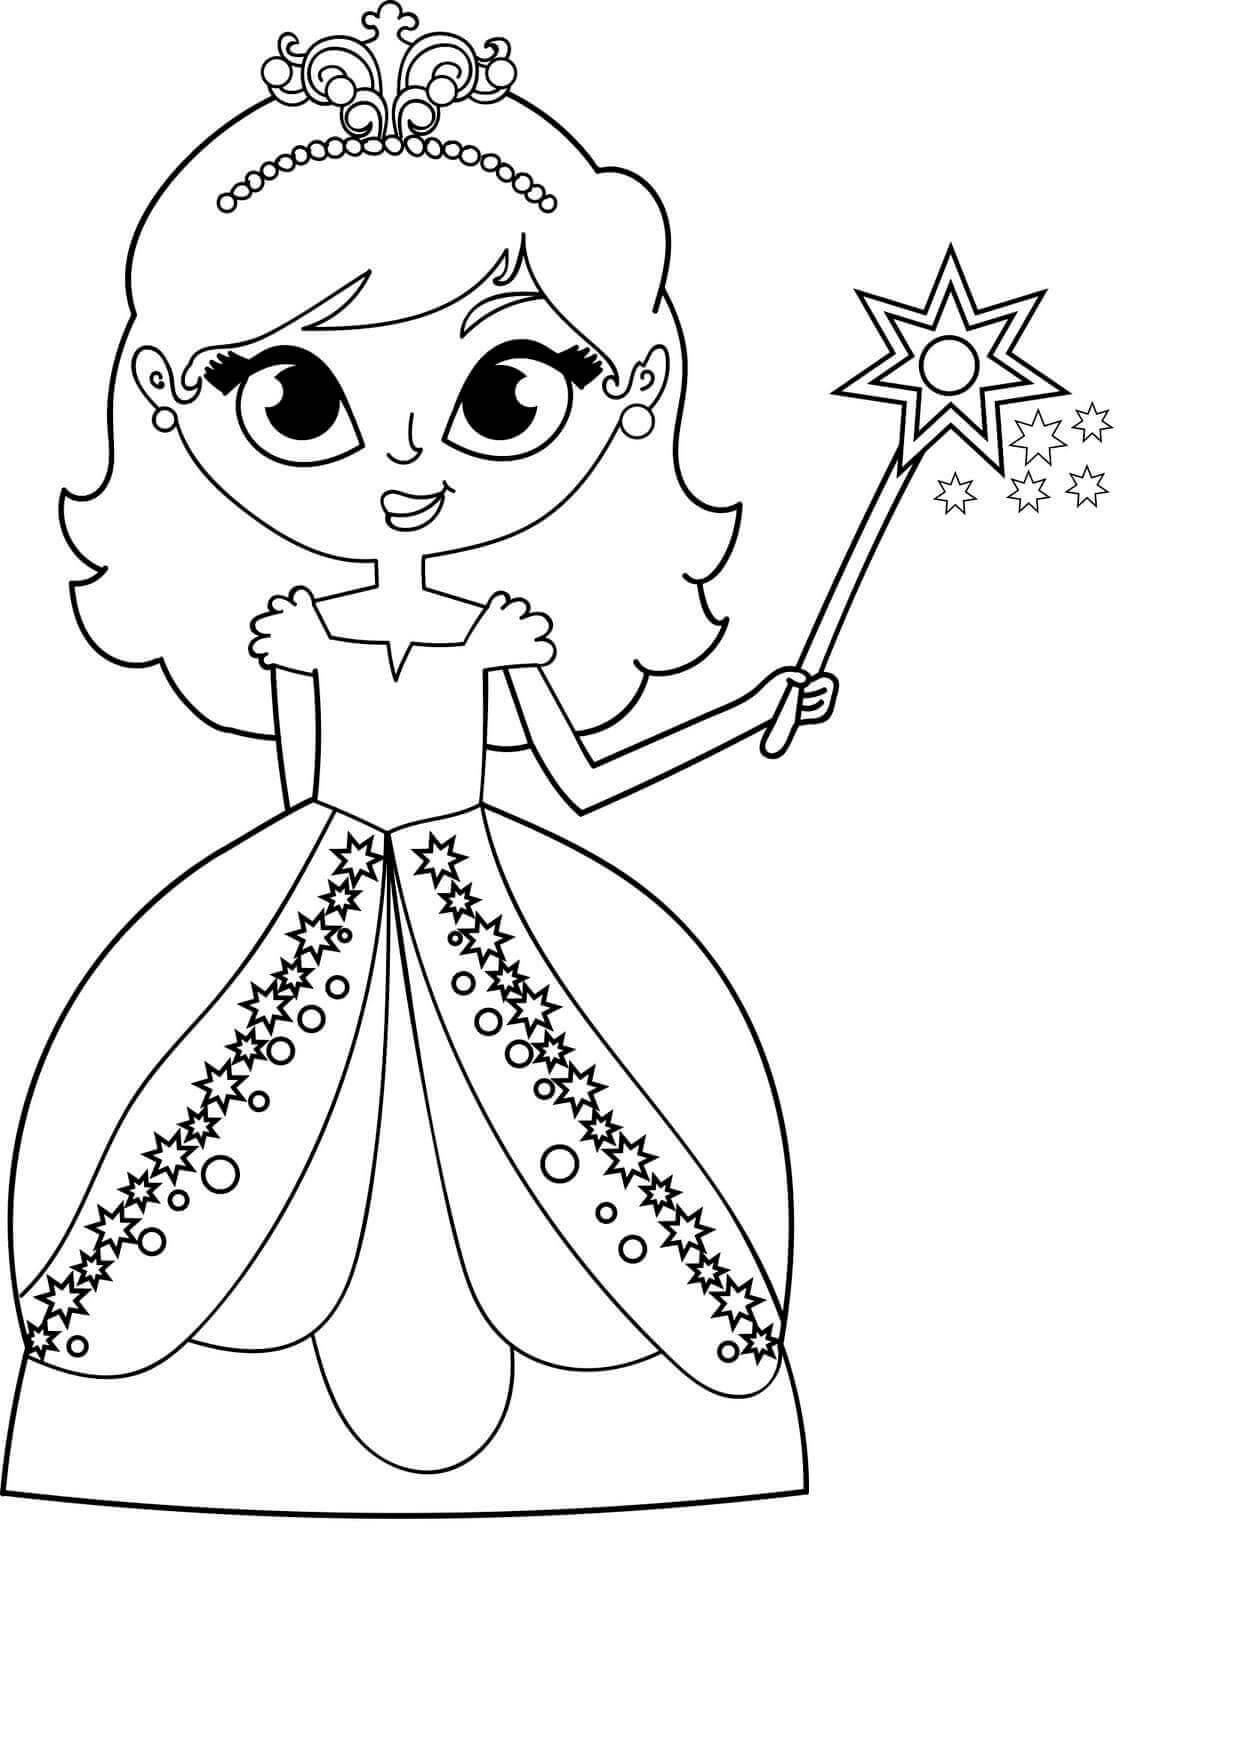 coloring sheet girl printable coloring pages for girls ideas whitesbelfast coloring sheet girl